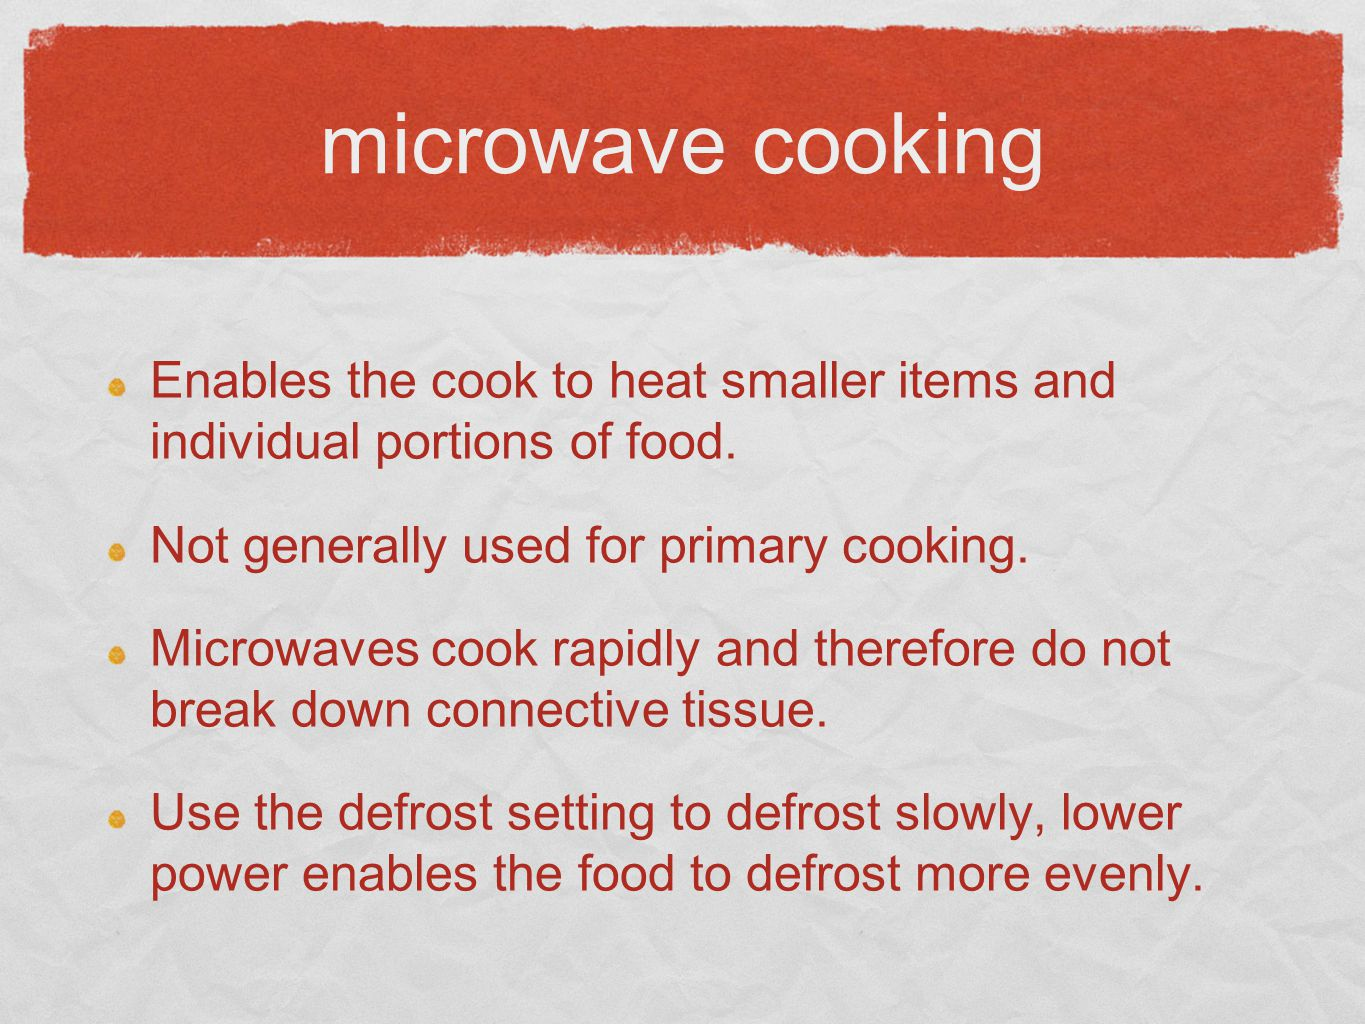 microwave cooking Enables the cook to heat smaller items and individual portions of food.